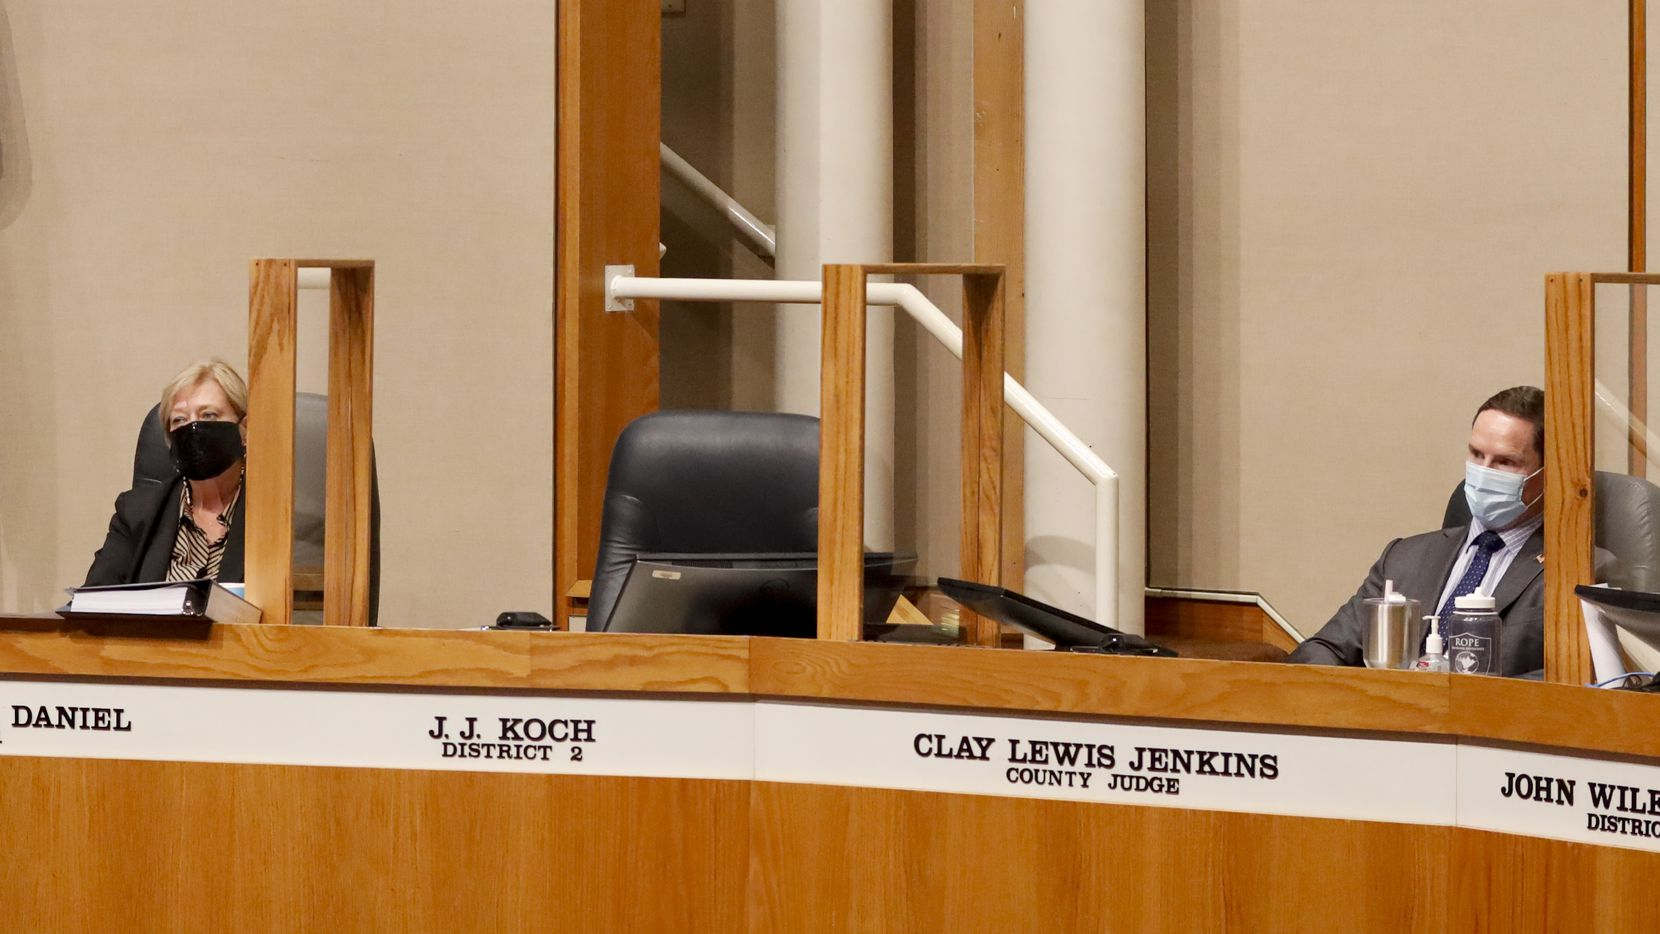 Dallas County Judge Clay Jenkins (right) and County Commissioner Theresa Daniel sit next to the empty chair of County Commissioner J.J. Koch during a Dallas County Commissioners Court meeting on Aug. 3, 2021, in Dallas. Koch was escorted from the meeting for refusing to wear a mask.